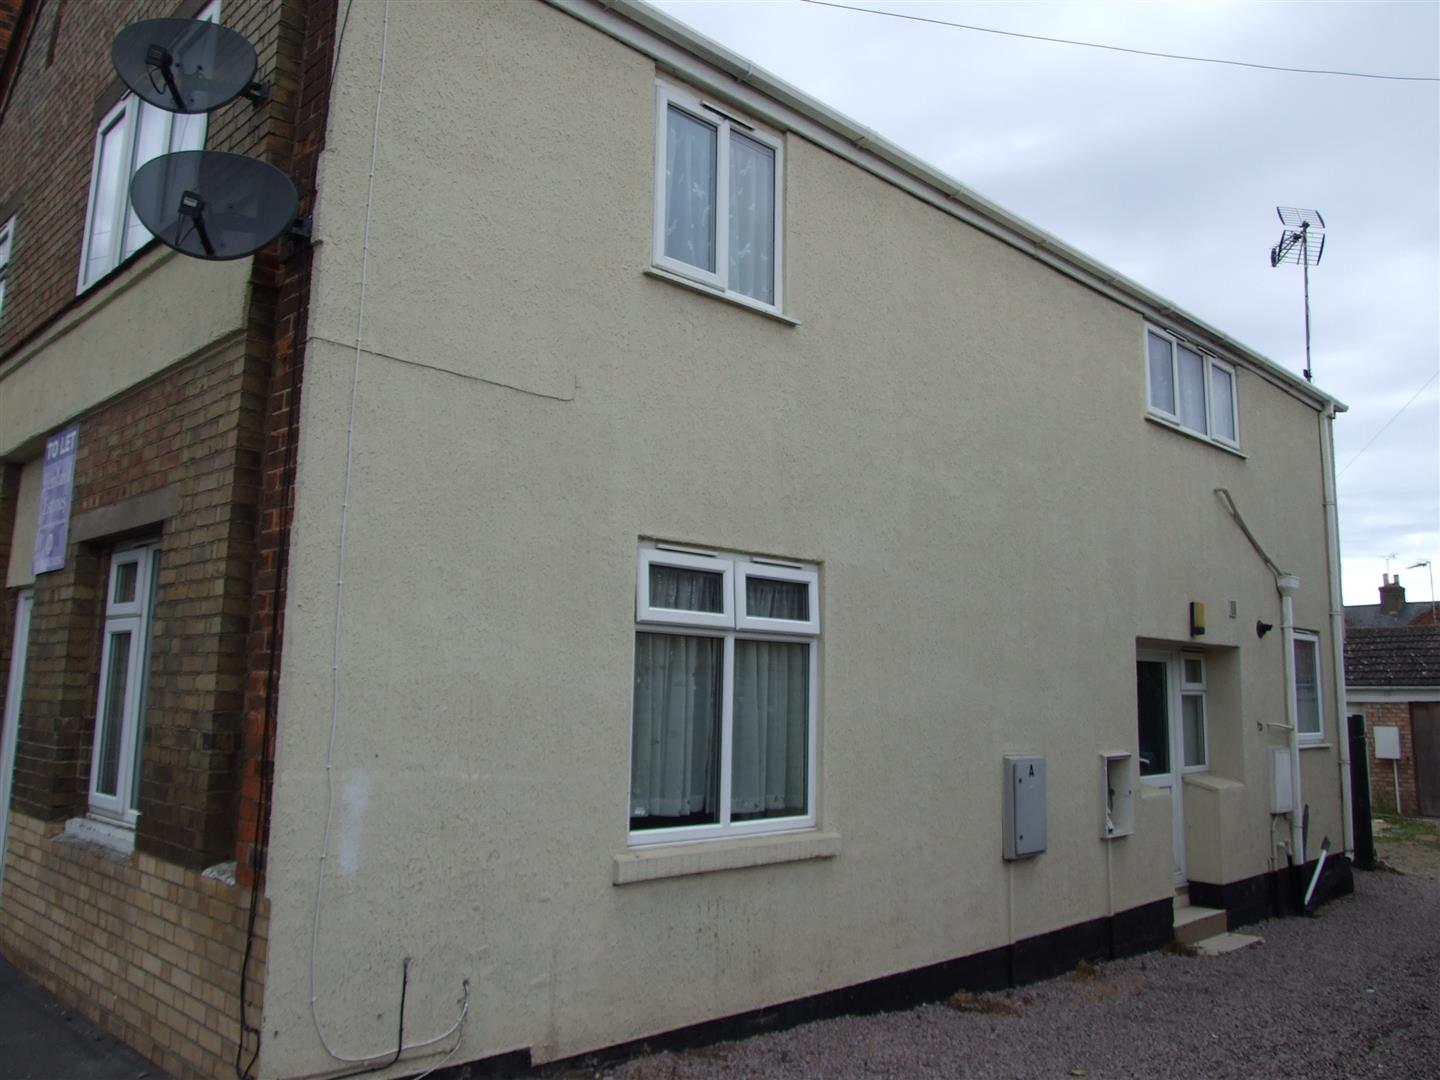 2 bed flat to rent in Sutton Bridge Spalding, PE12 9SF, PE12